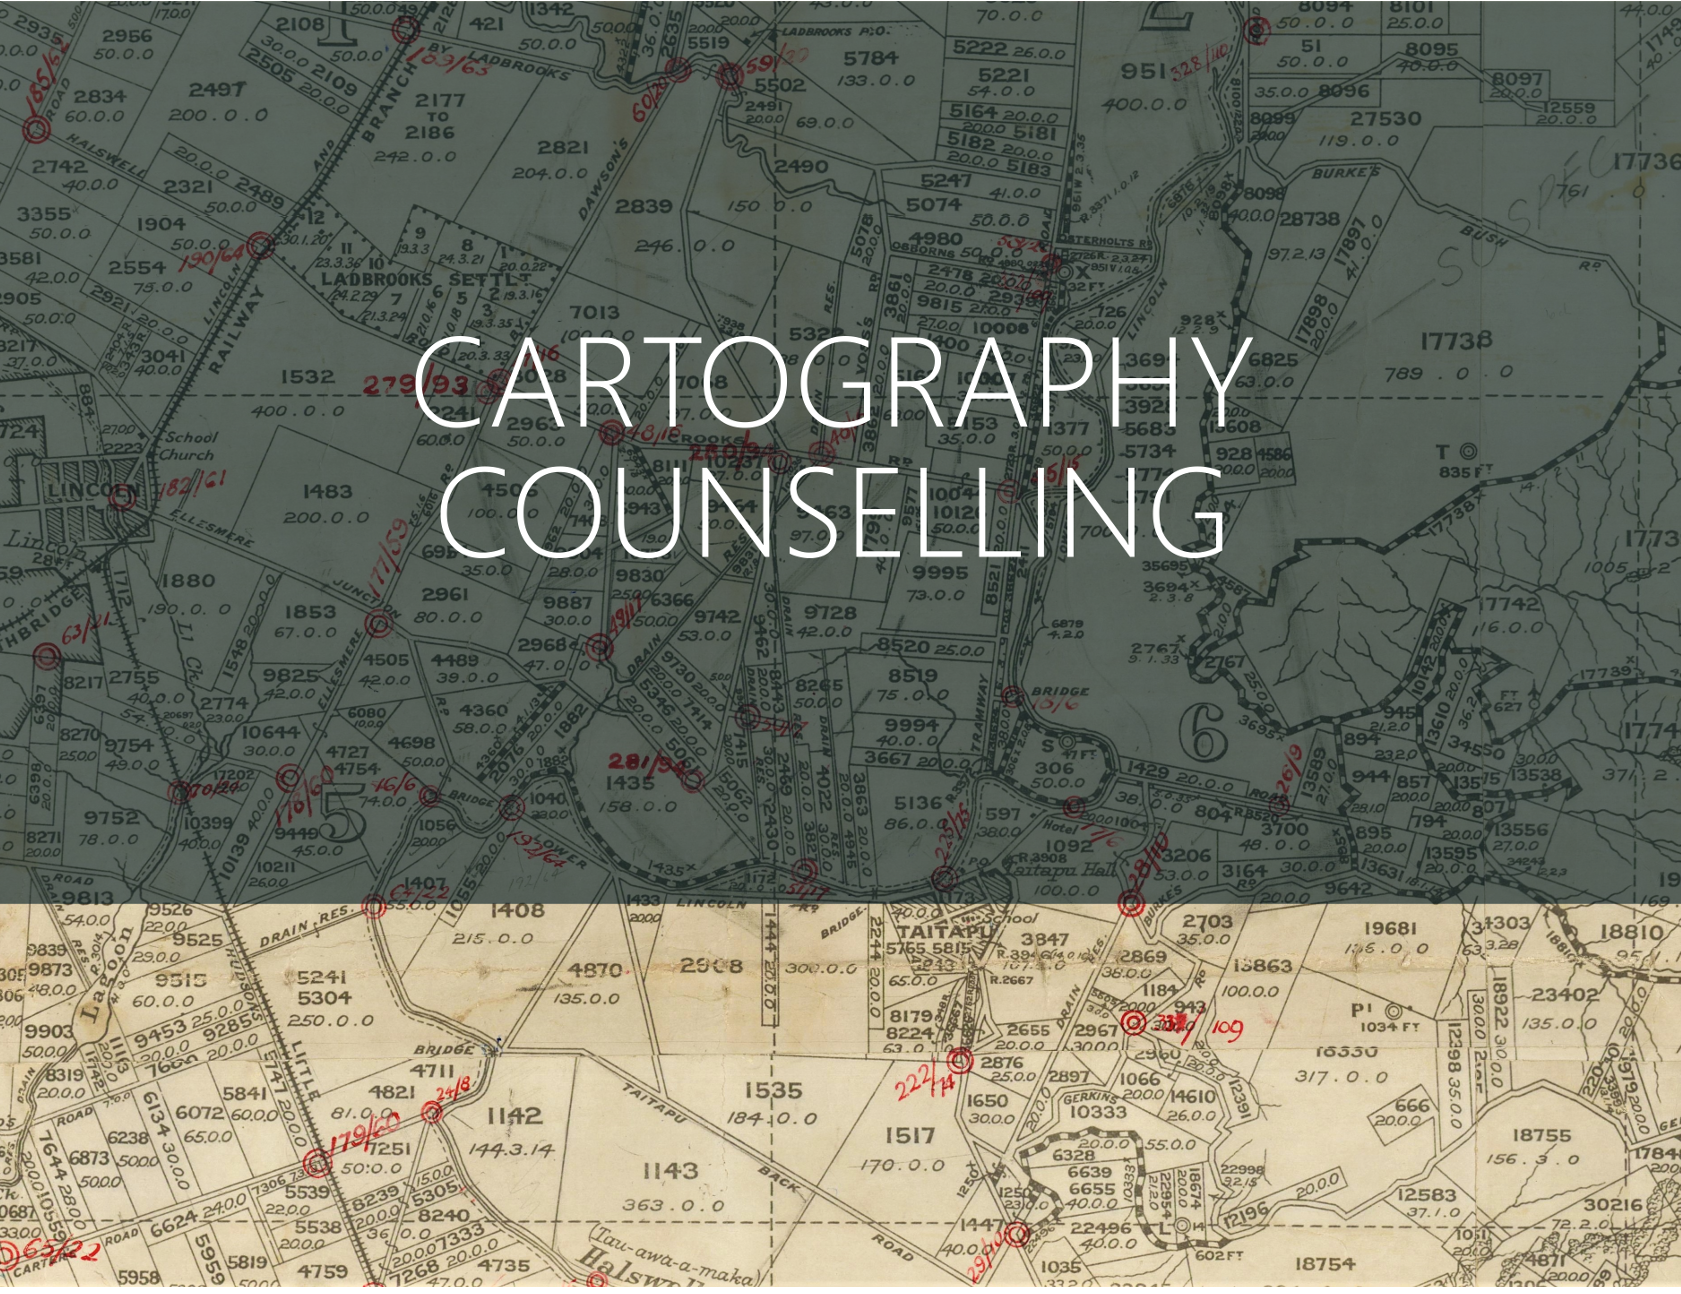 Cartography Counselling